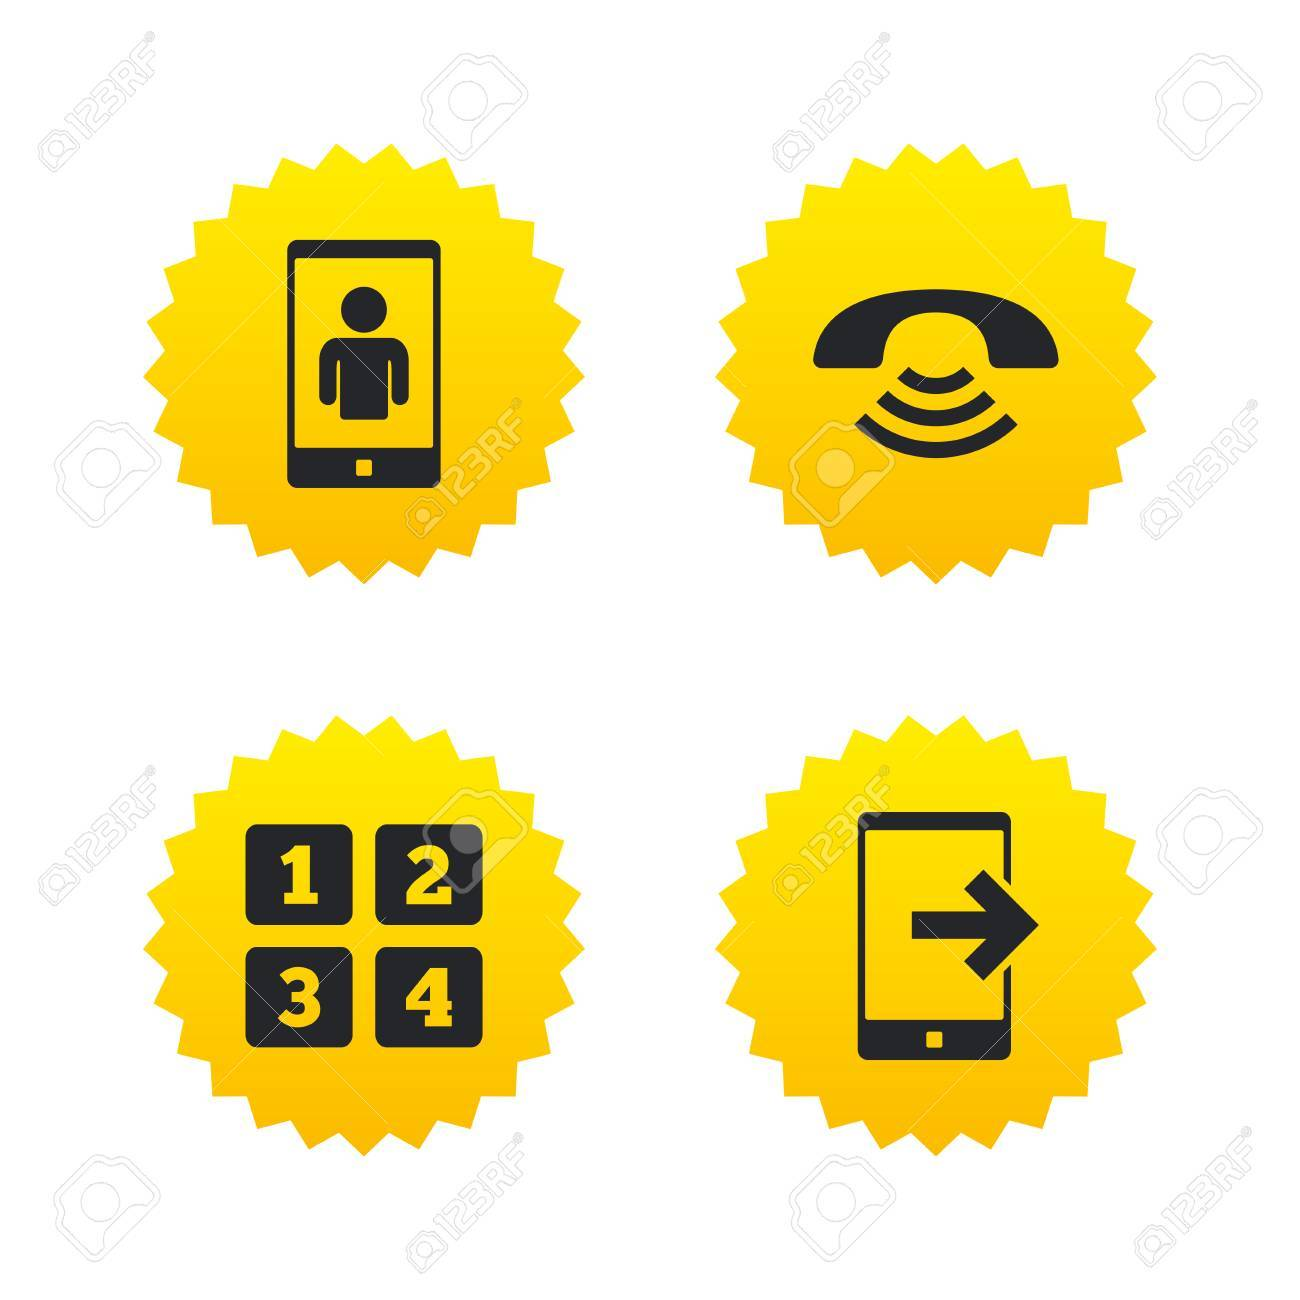 Phone Icons Smartphone Video Call Sign Call Center Support Symbol